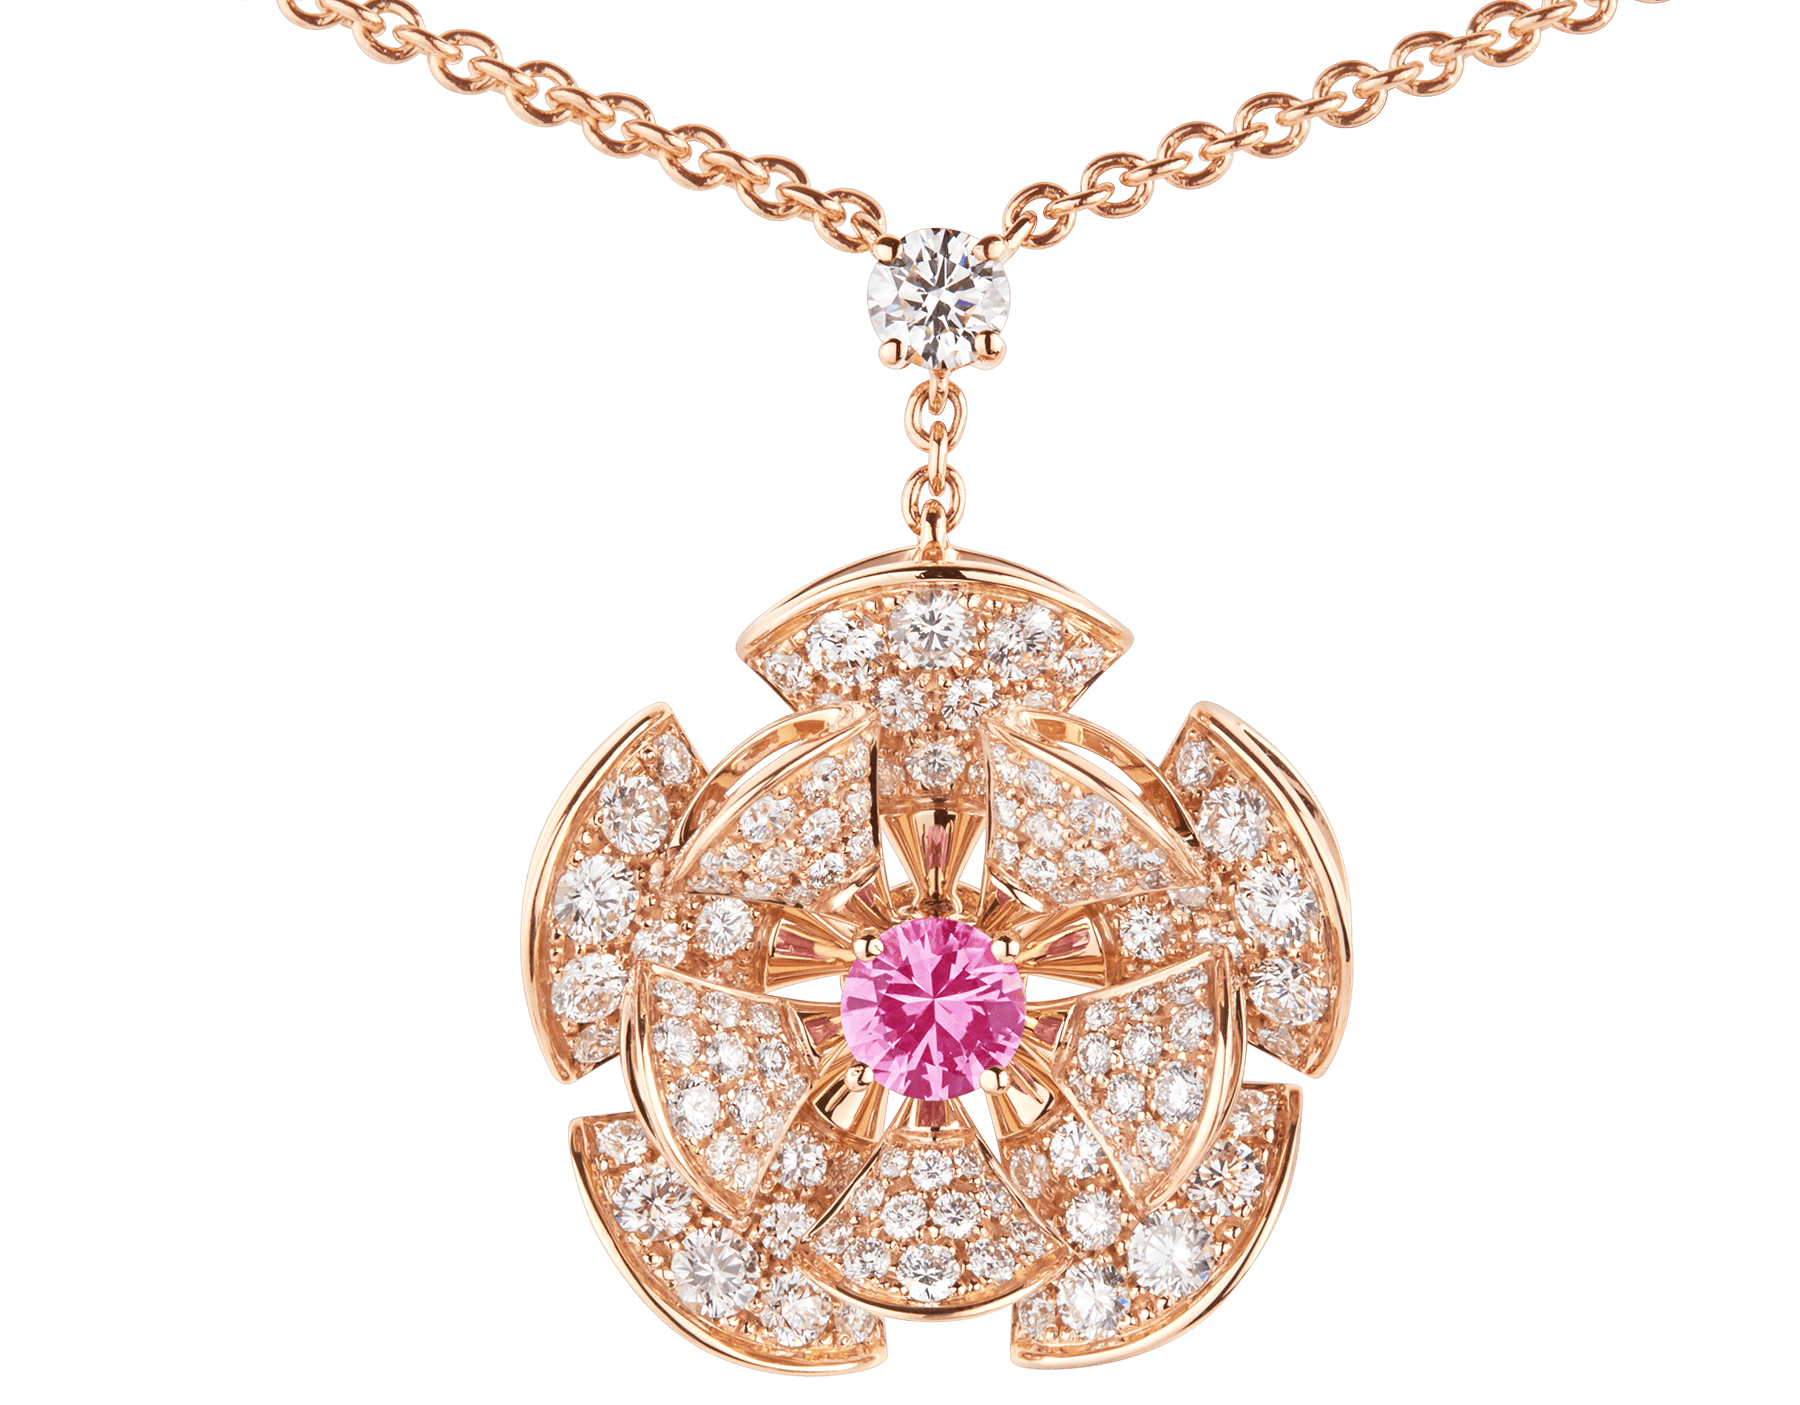 DIVAS' DREAM necklace in 18 kt rose gold with chain set with pink sapphires and a diamond, and with a pendant set with a central pink sapphire and pavé diamonds. 352628 image 3